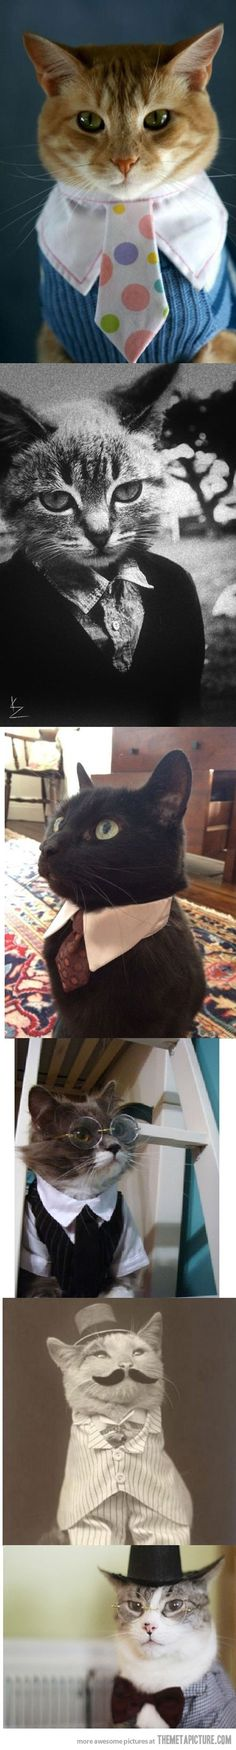 These cats are classy.  (SO...I might have purchased a small bow tie for Chandler in the hopes that I can get an adorable photo -just one!- of him with it...don't judge me.)